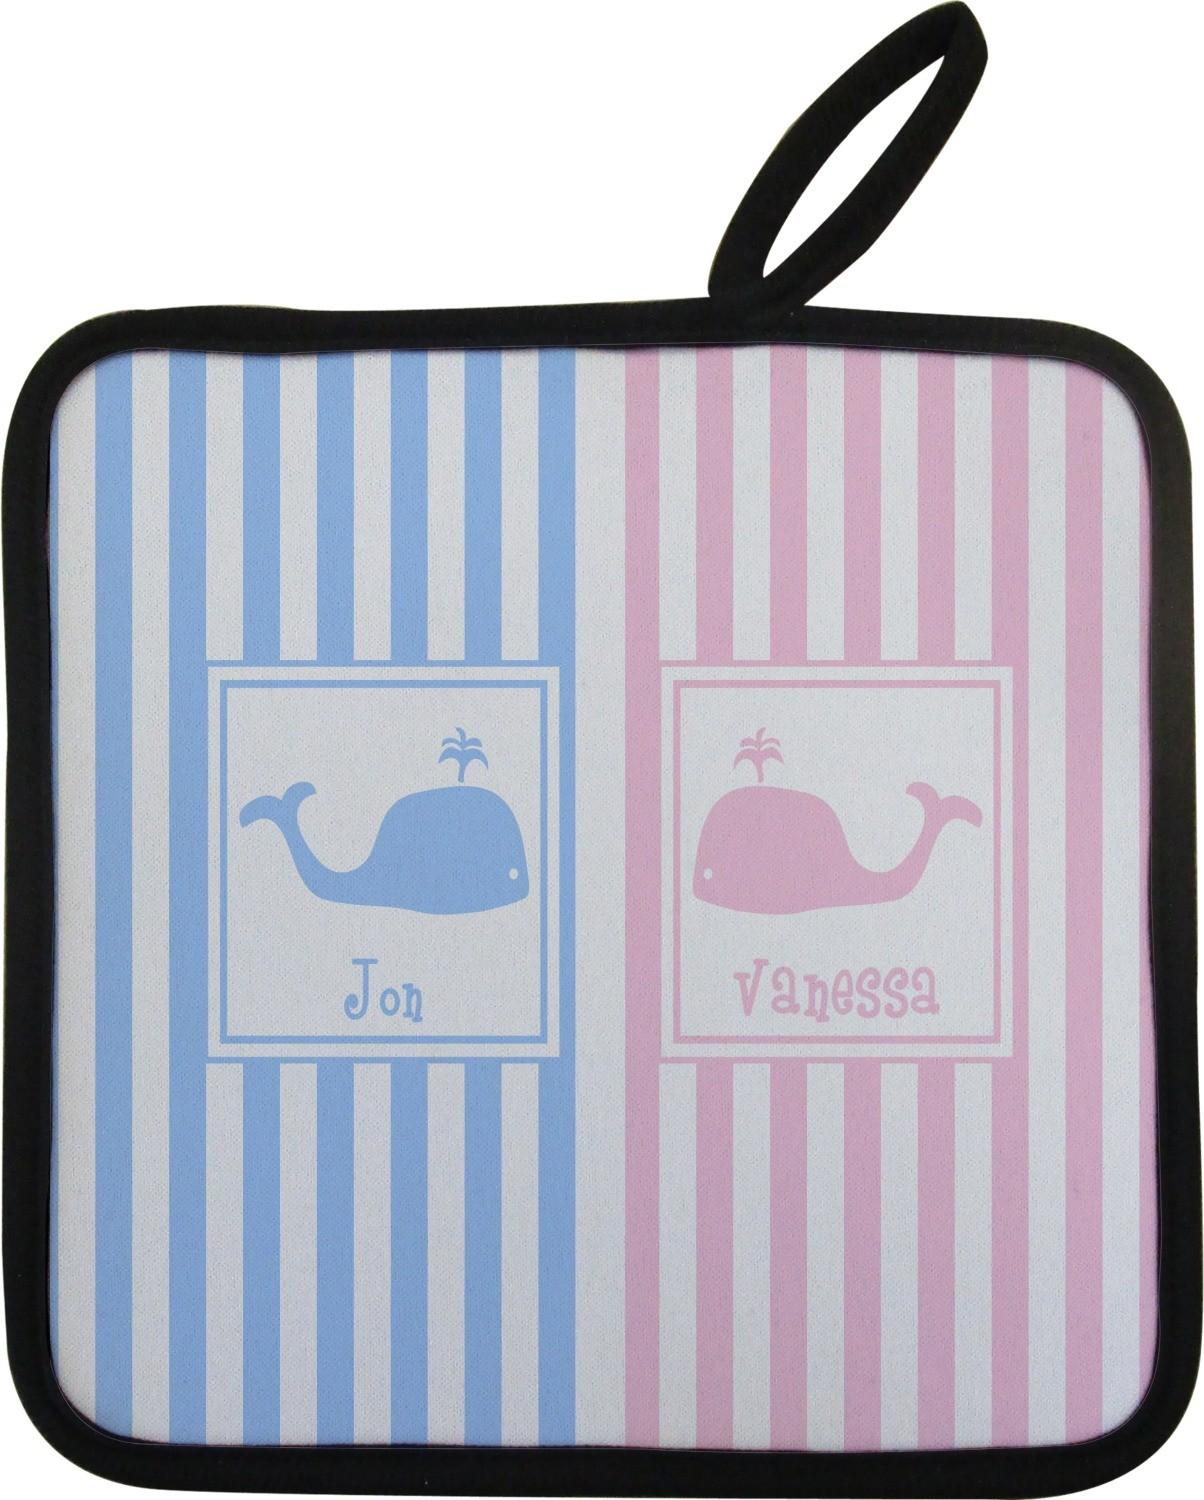 Striped Whales Pot Holder Personalized Customize